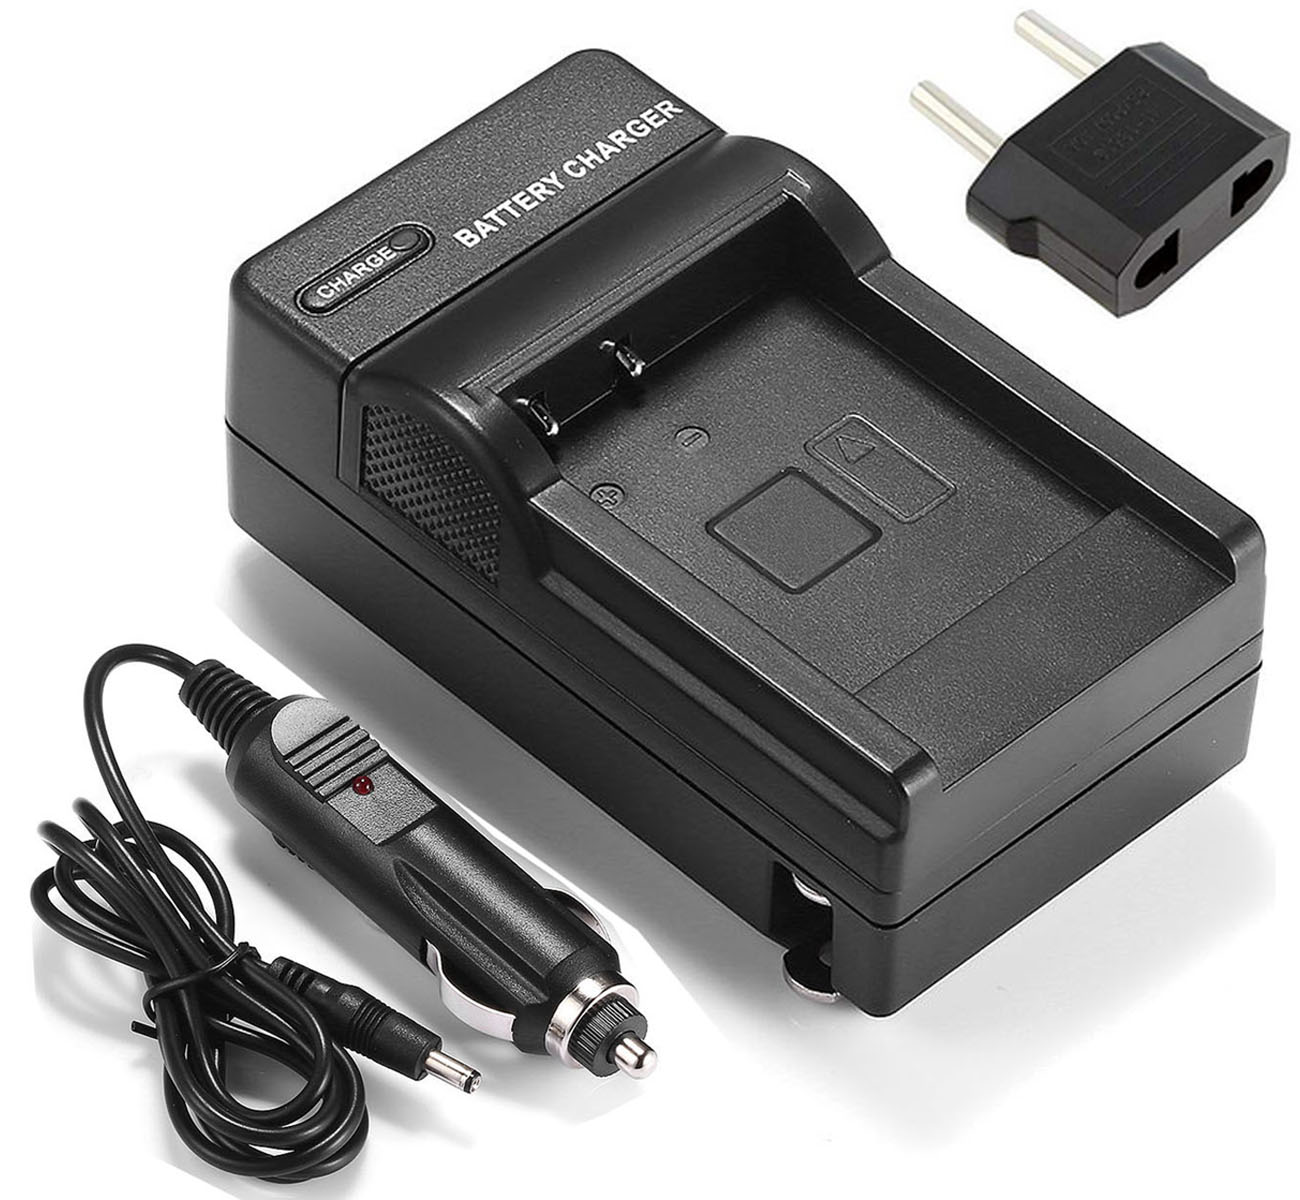 SC-D457 Digital Camcorder SC-D455 Battery Charger for Samsung SC-D453